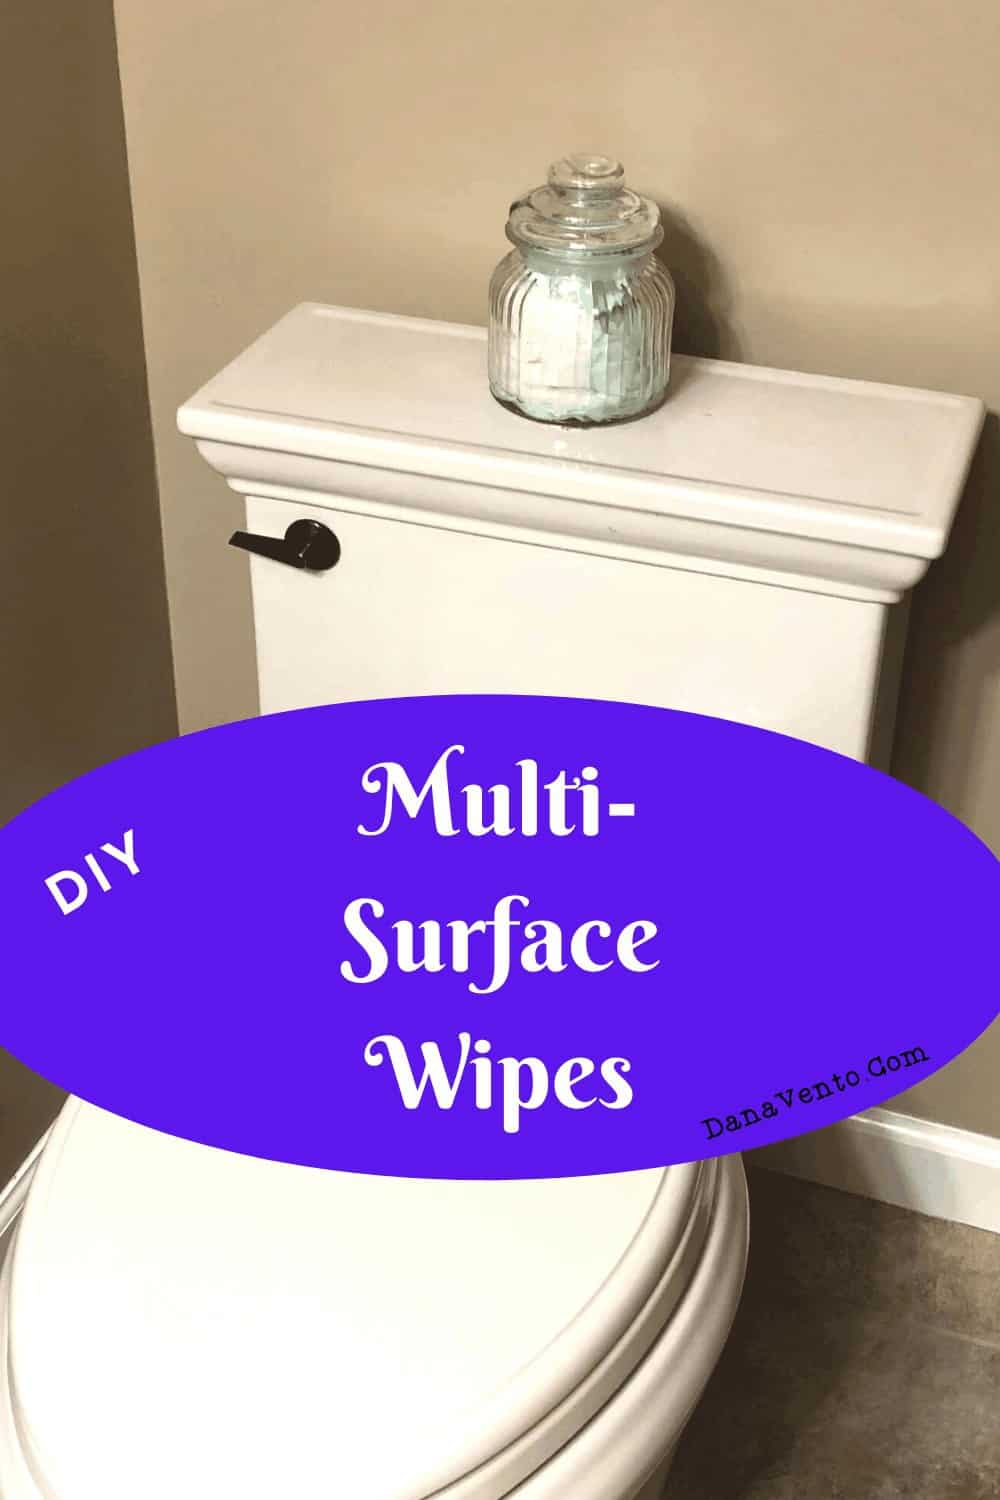 DIY Disinfectant Wipes Multisurface Cleaning, on toilet